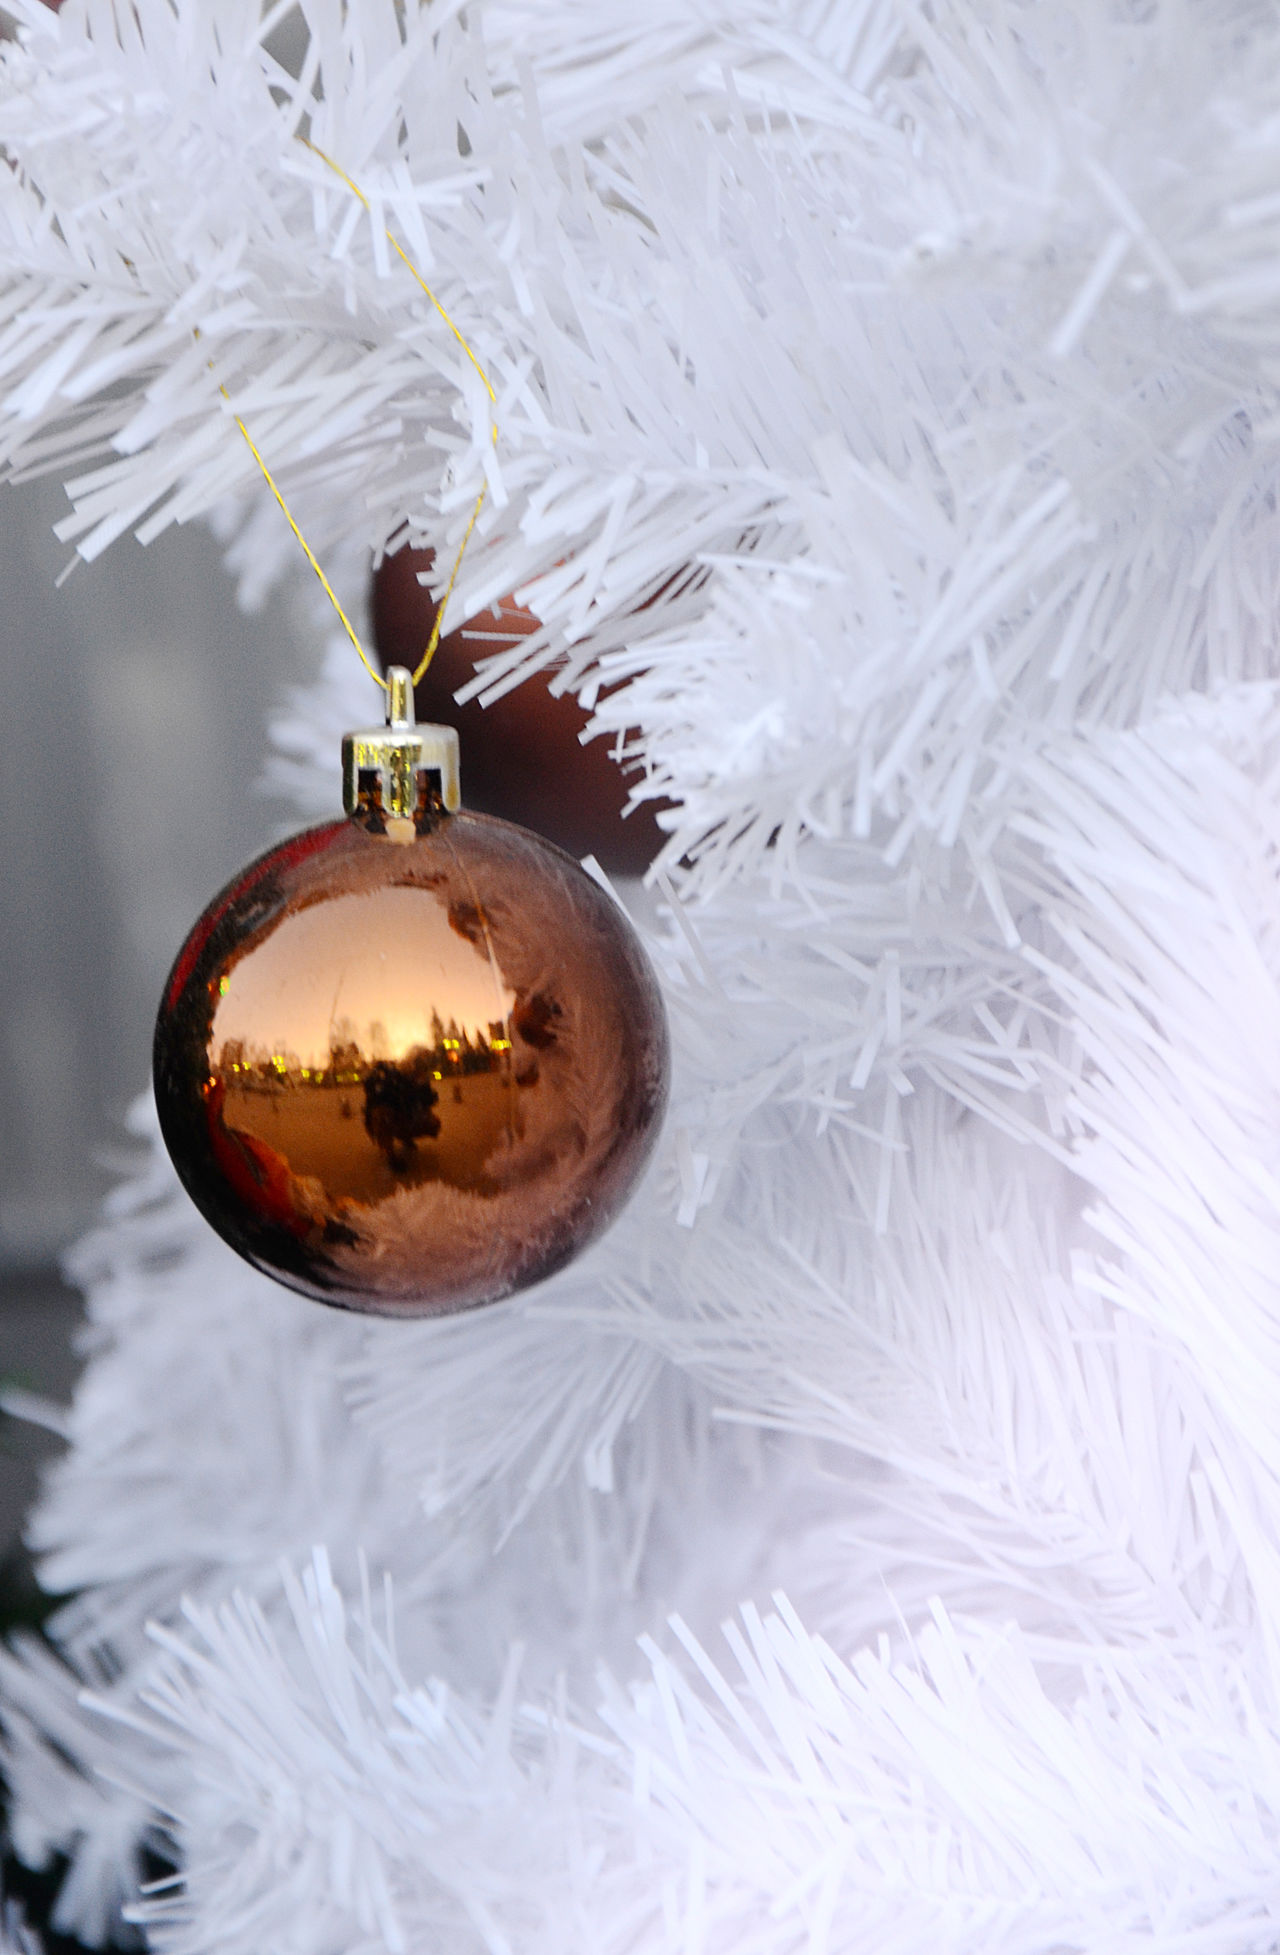 xmas decoration Bauble Bubbles Hanging Shine Xmas Xmas Decorations Xmas Tree